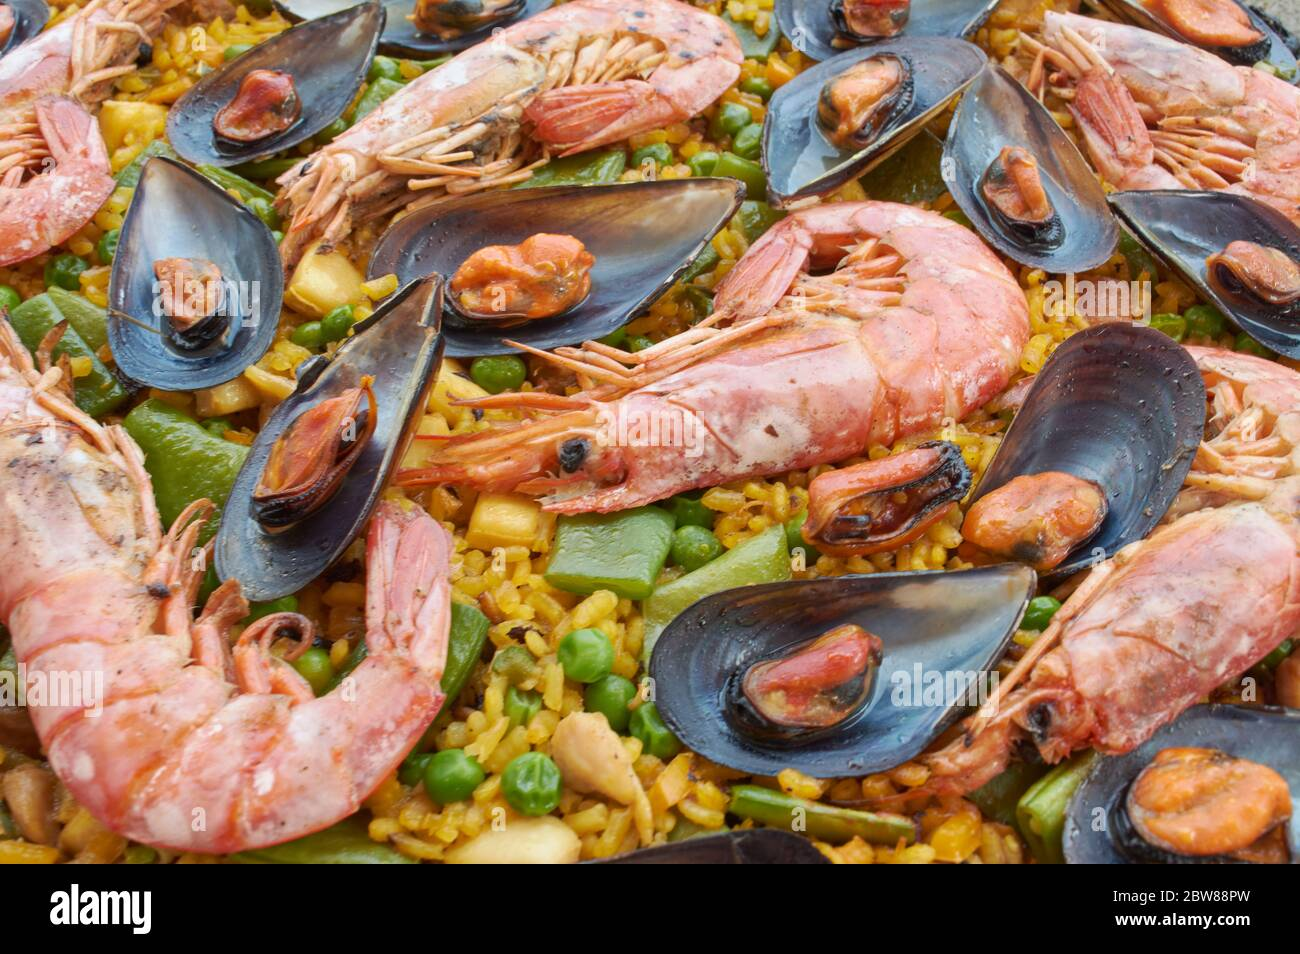 Traditional Spanish Paella with seafood vegetable meat, and rice Stock Photo